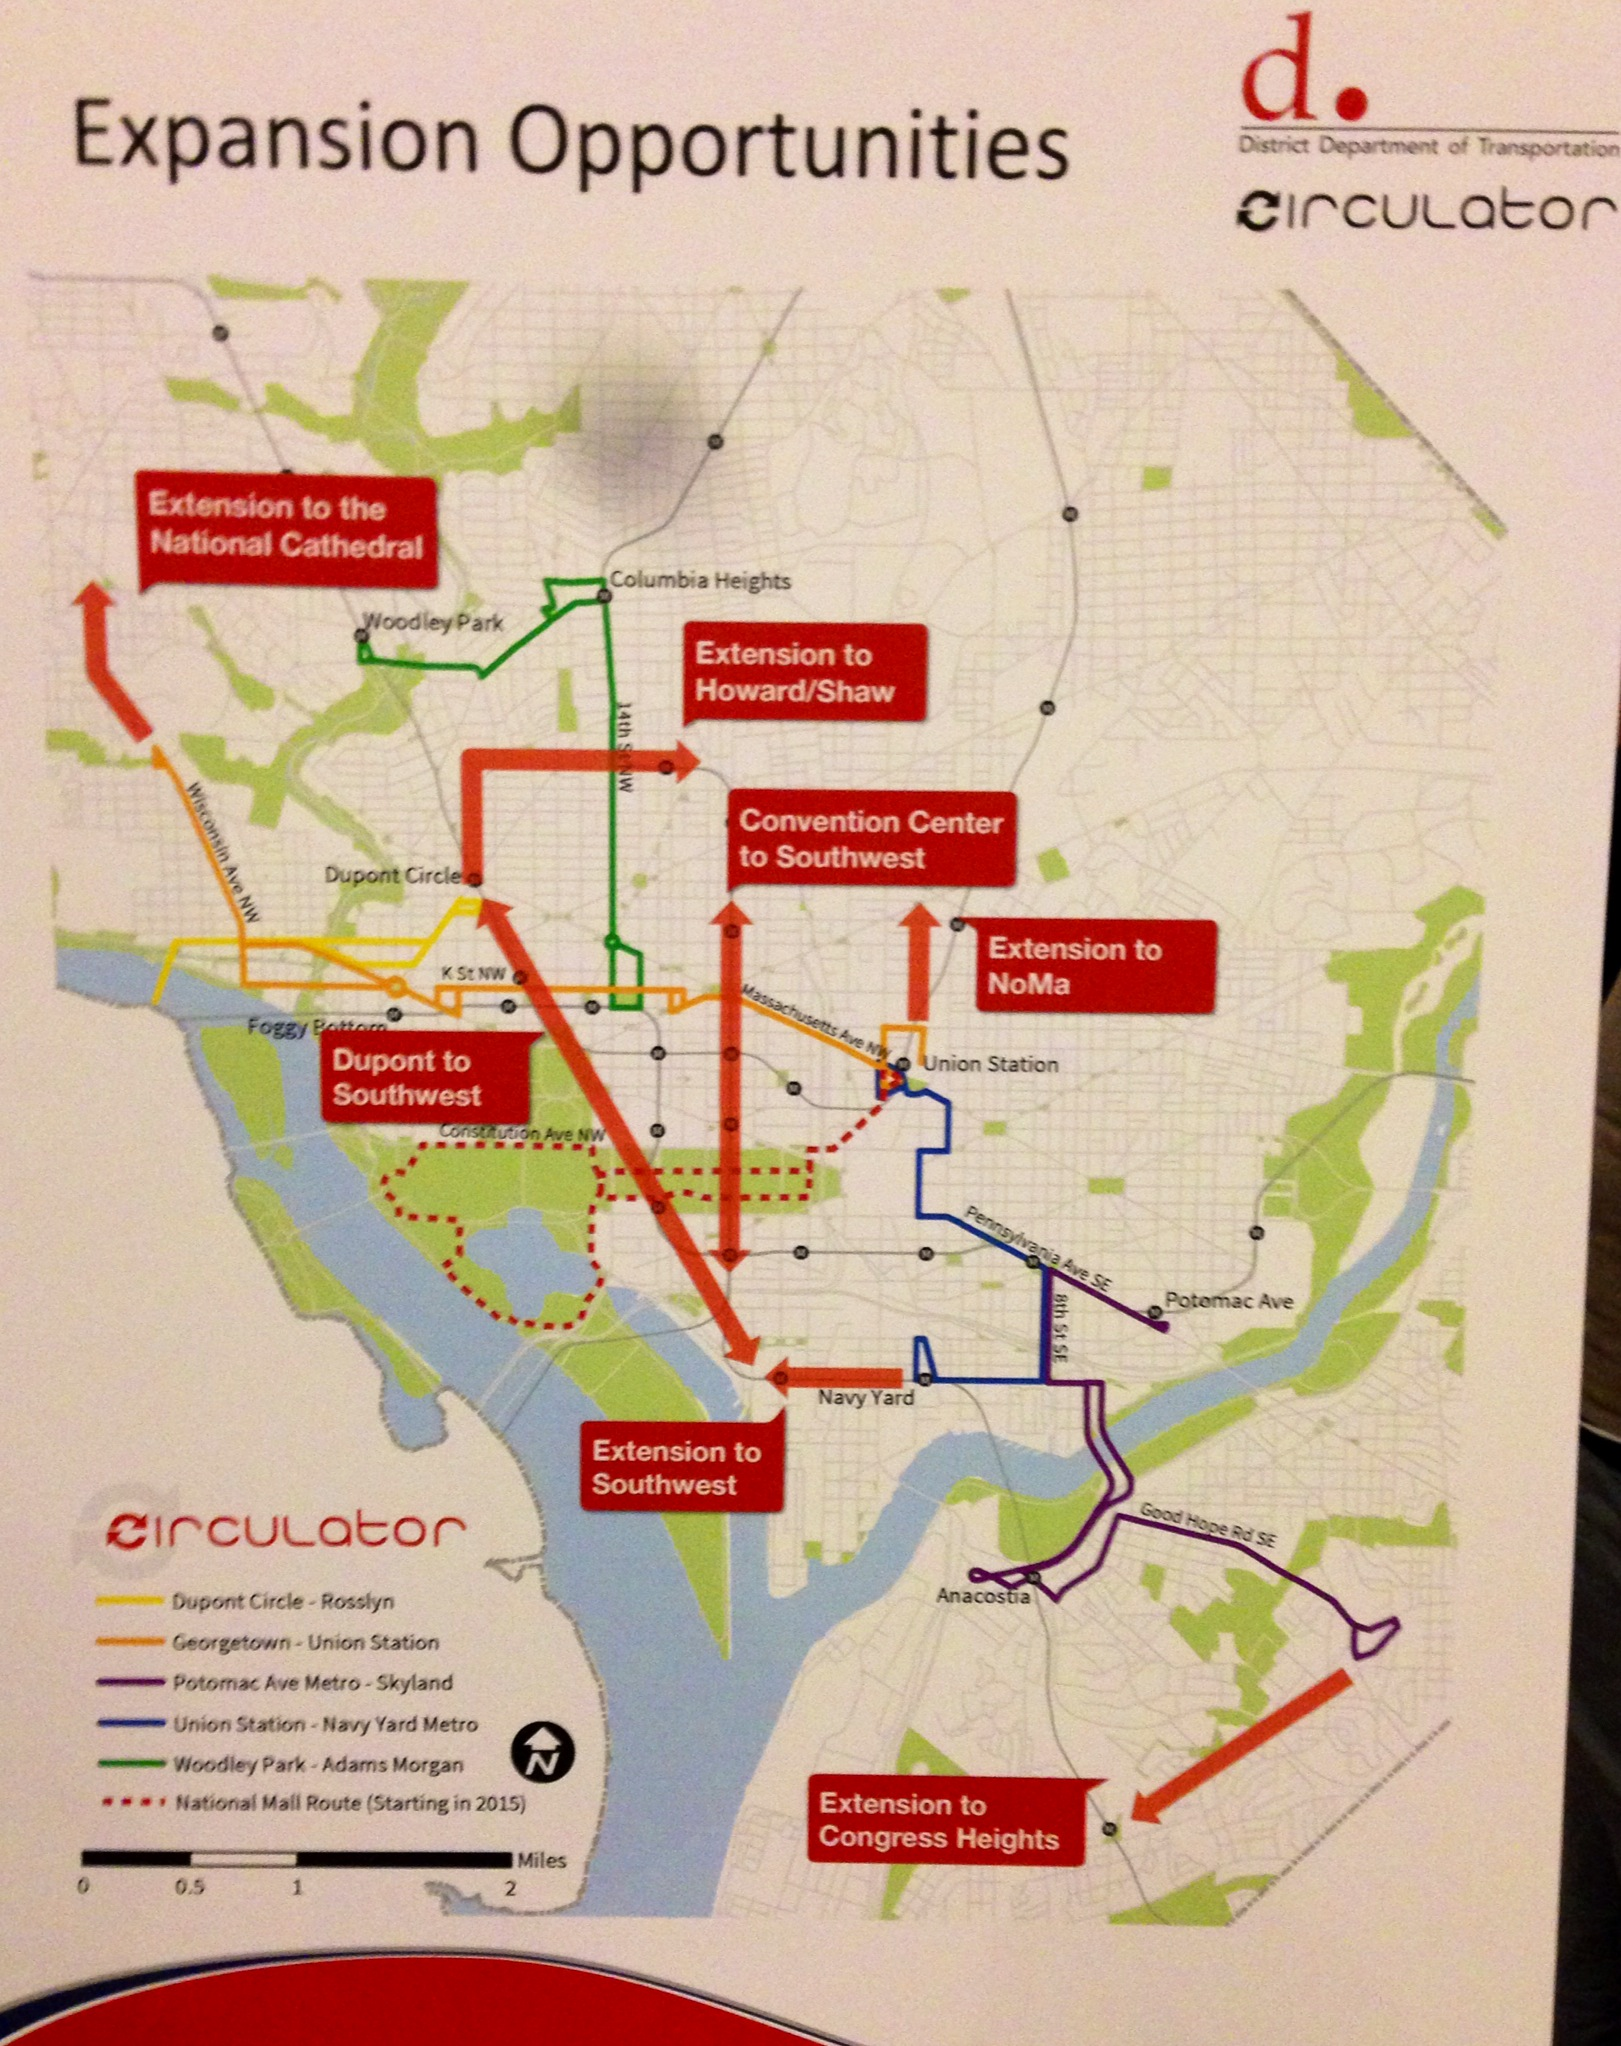 After a decade in service, where could the Circulator go